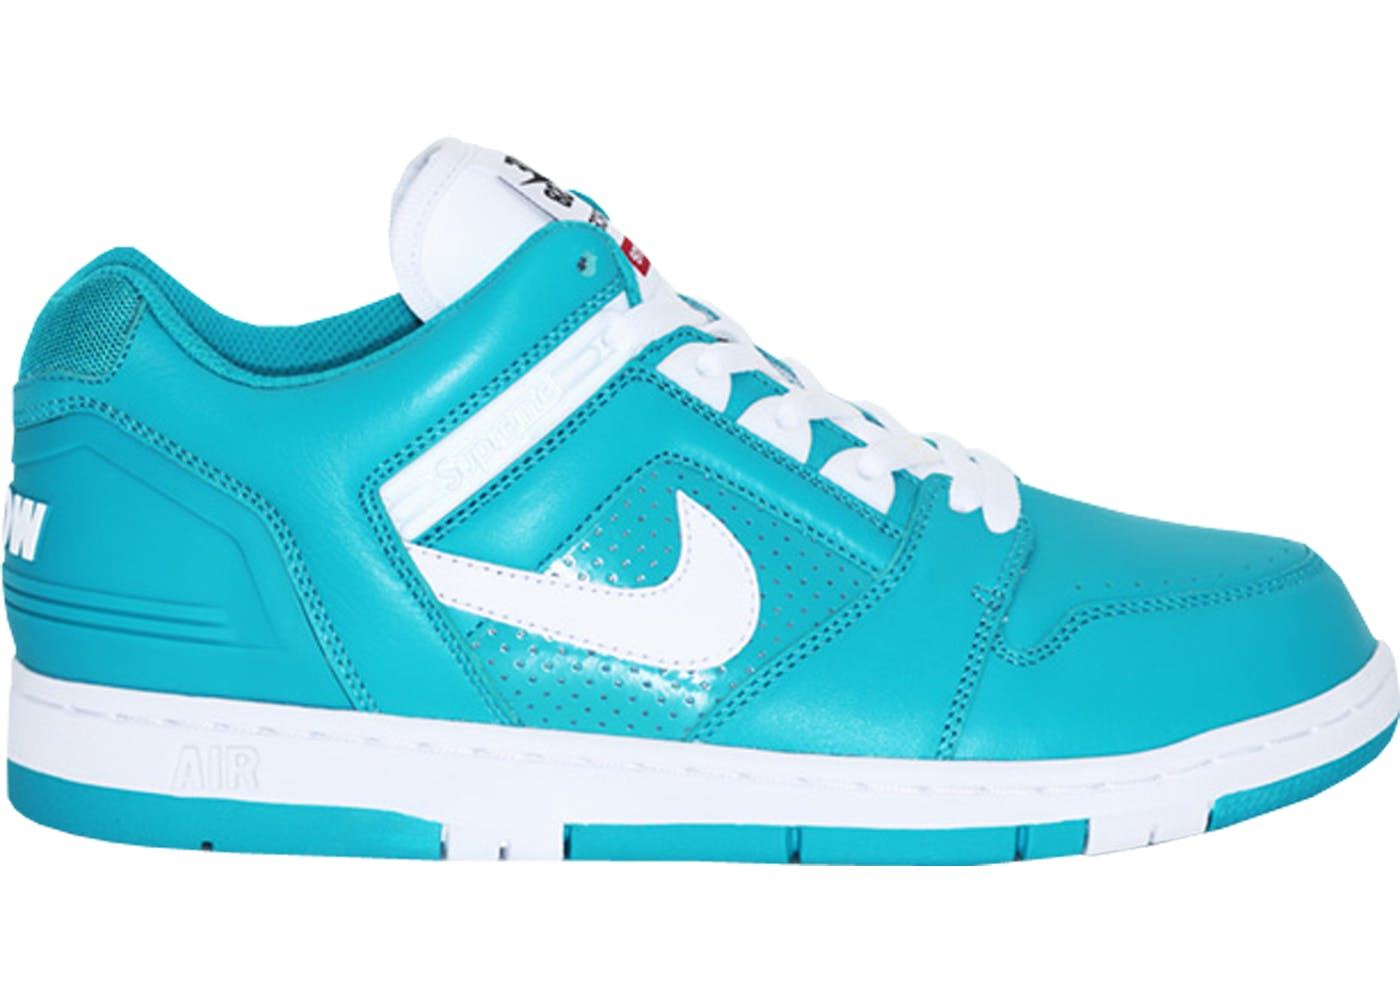 nike sb air force 2 low supreme blue. Black Bedroom Furniture Sets. Home Design Ideas